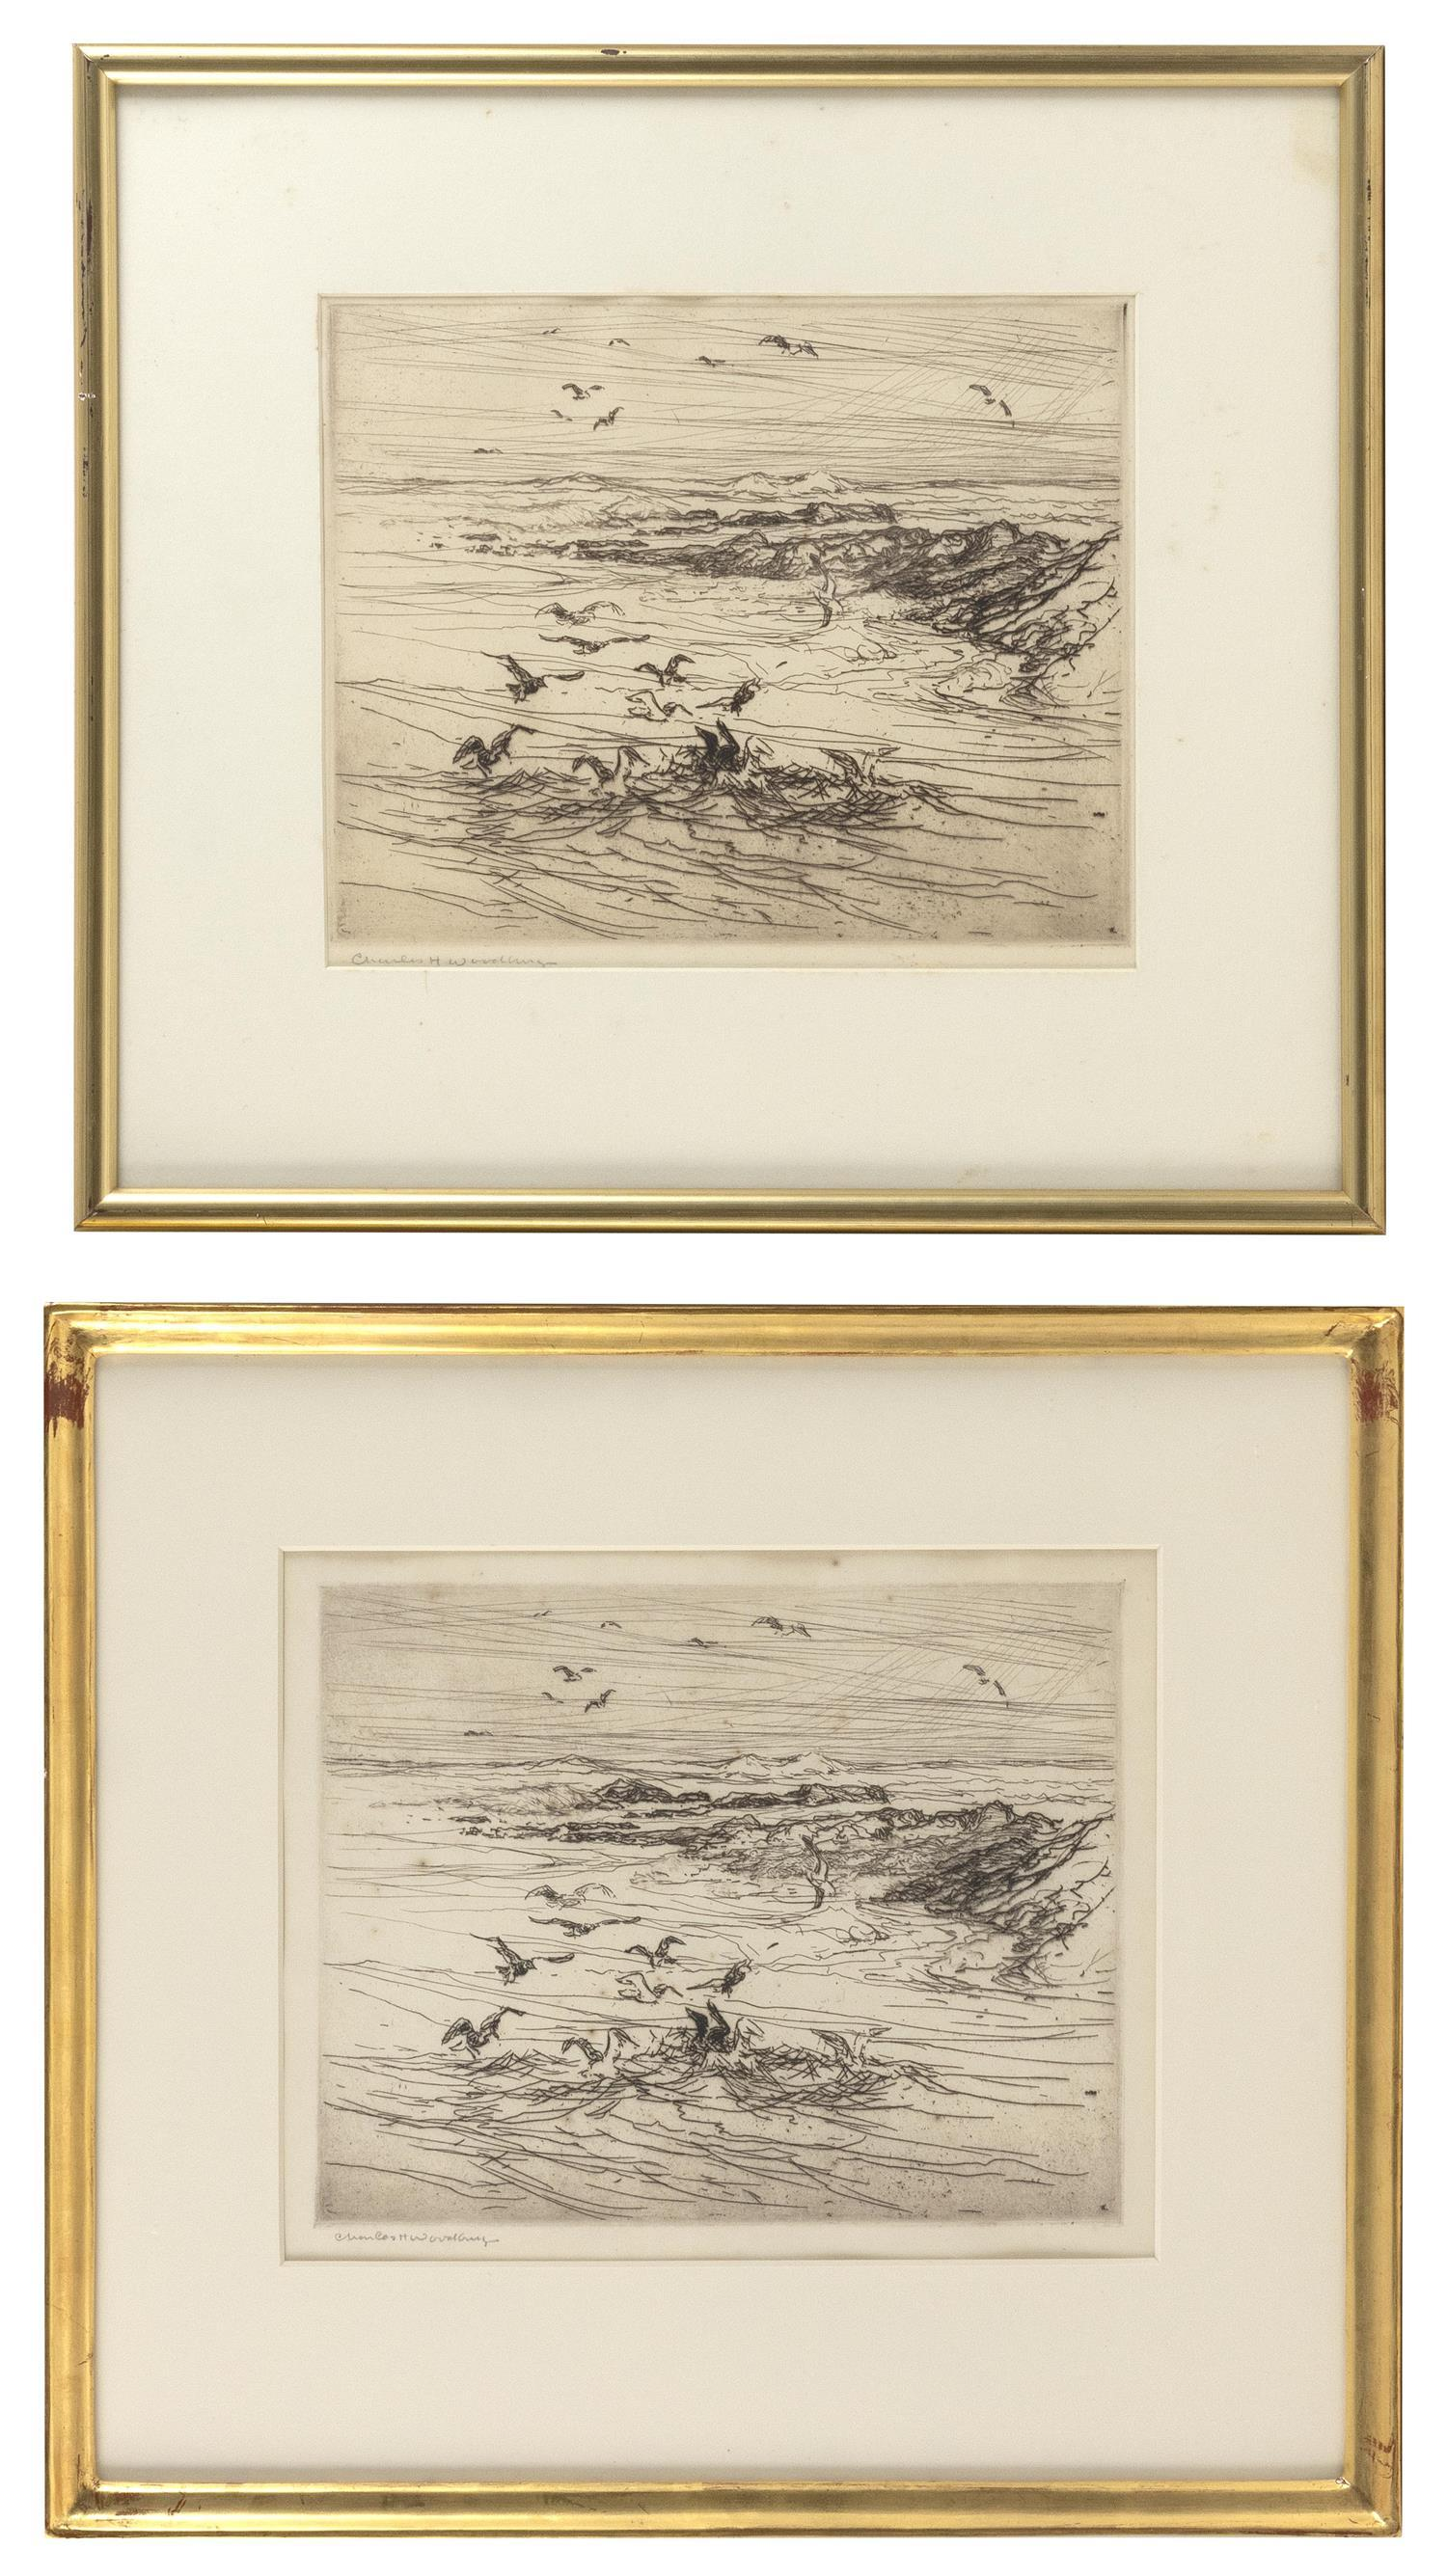 "CHARLES H. WOODBURY, Massachusetts/Maine, 1864-1940, Two scenes of feeding seagulls., Drypoint etchings on paper, 9"" x 11"" and 9.75""..."